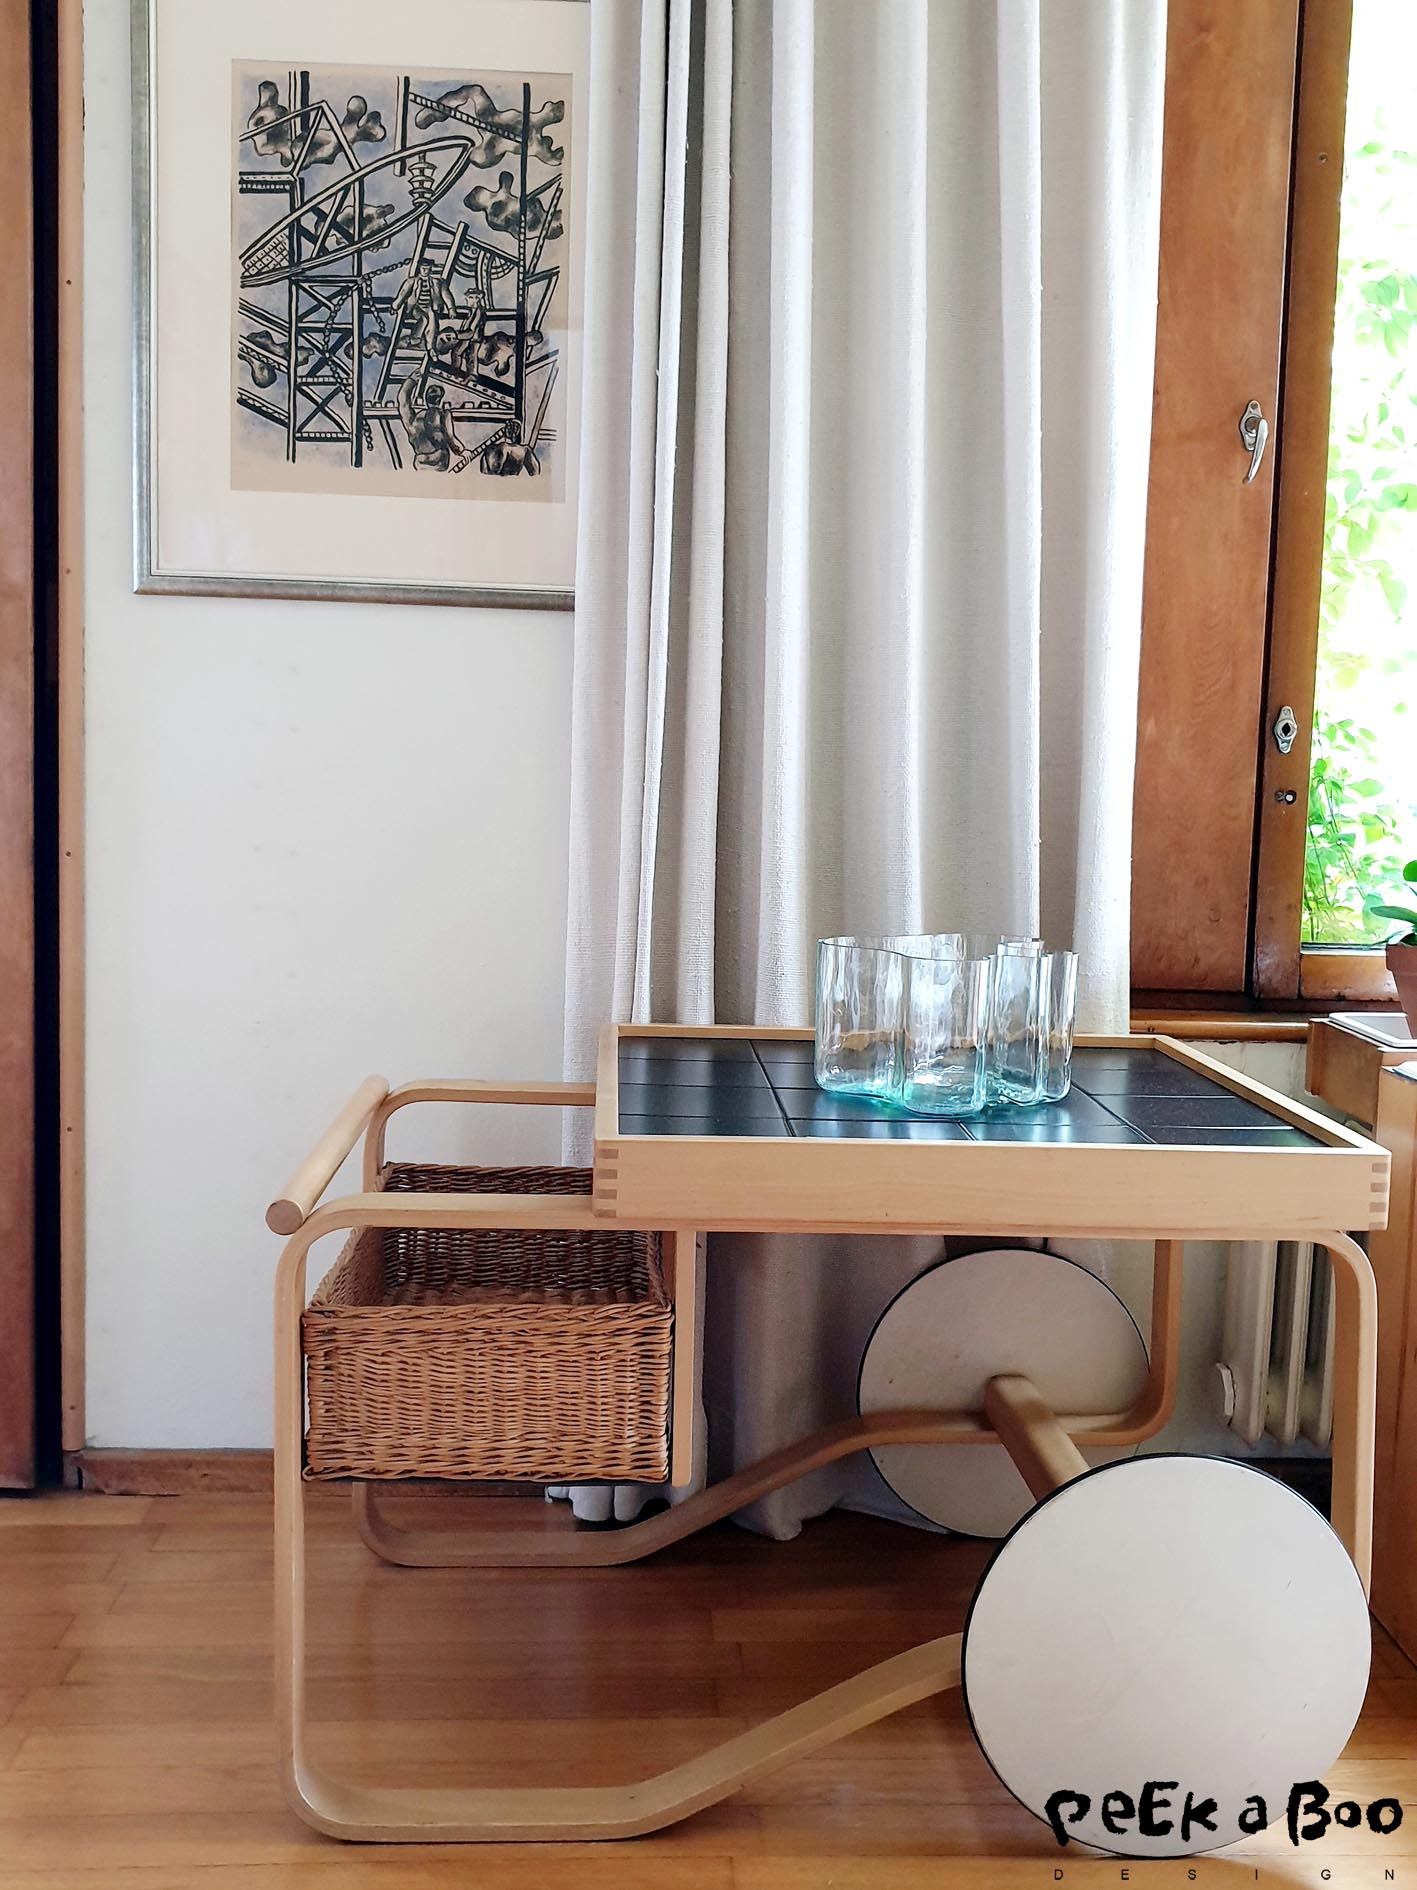 This trolley is my absolutly favorite of Alvar Aalto's designs. I love that his has used at braided basket as drawer to his very simple design.